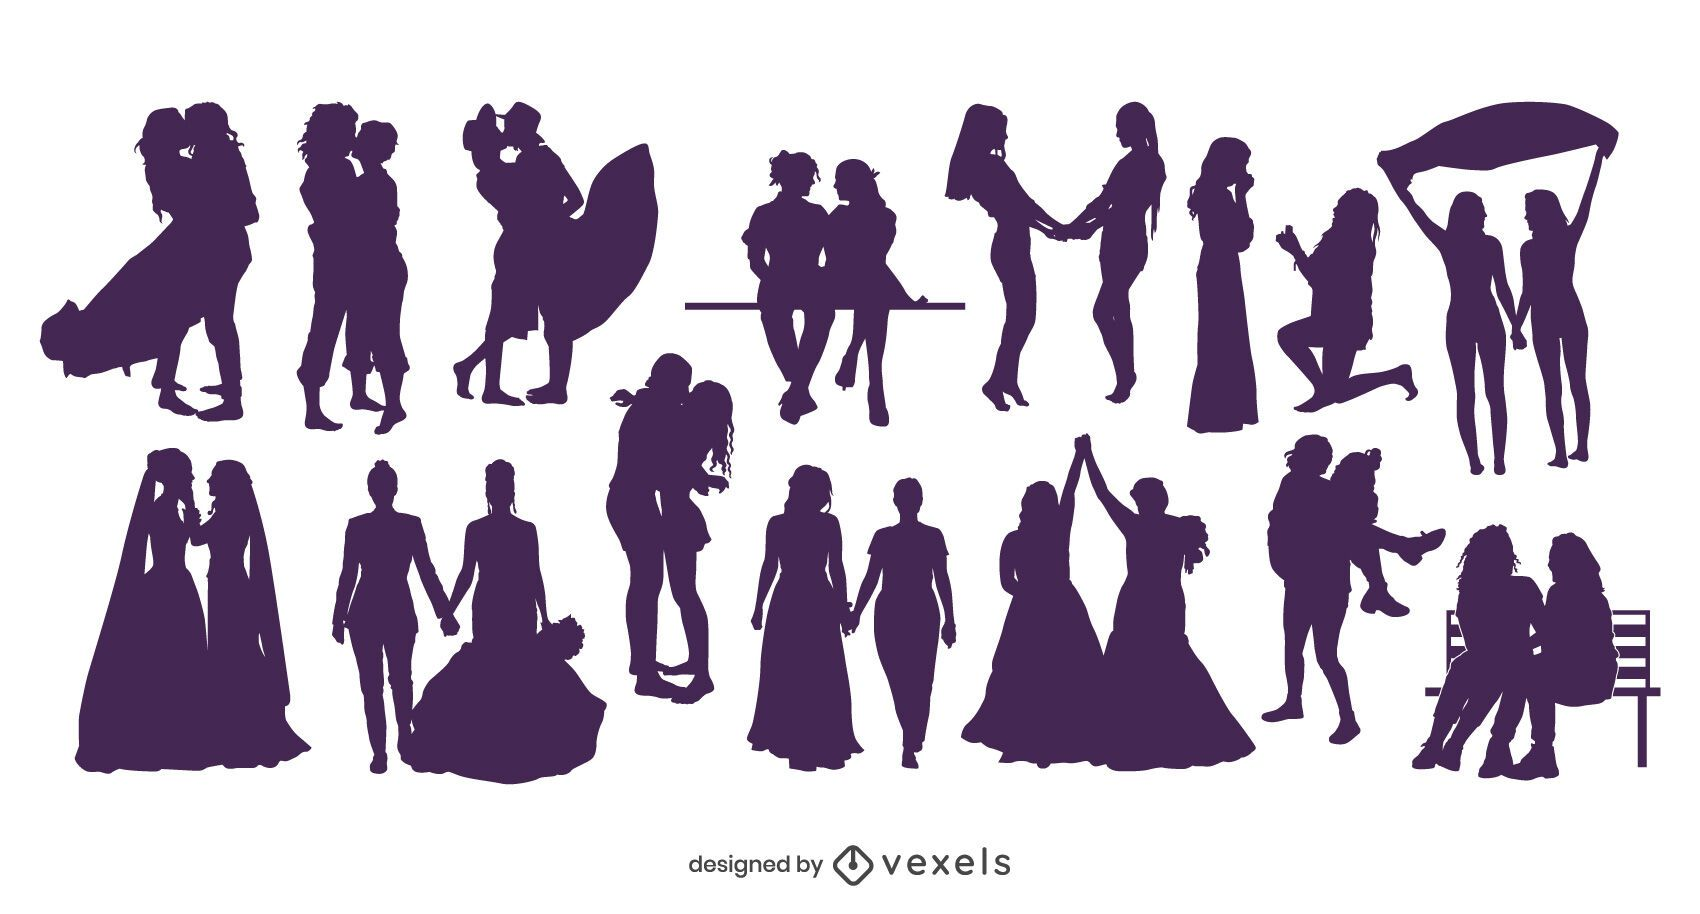 Lesbian couples silhouette collection